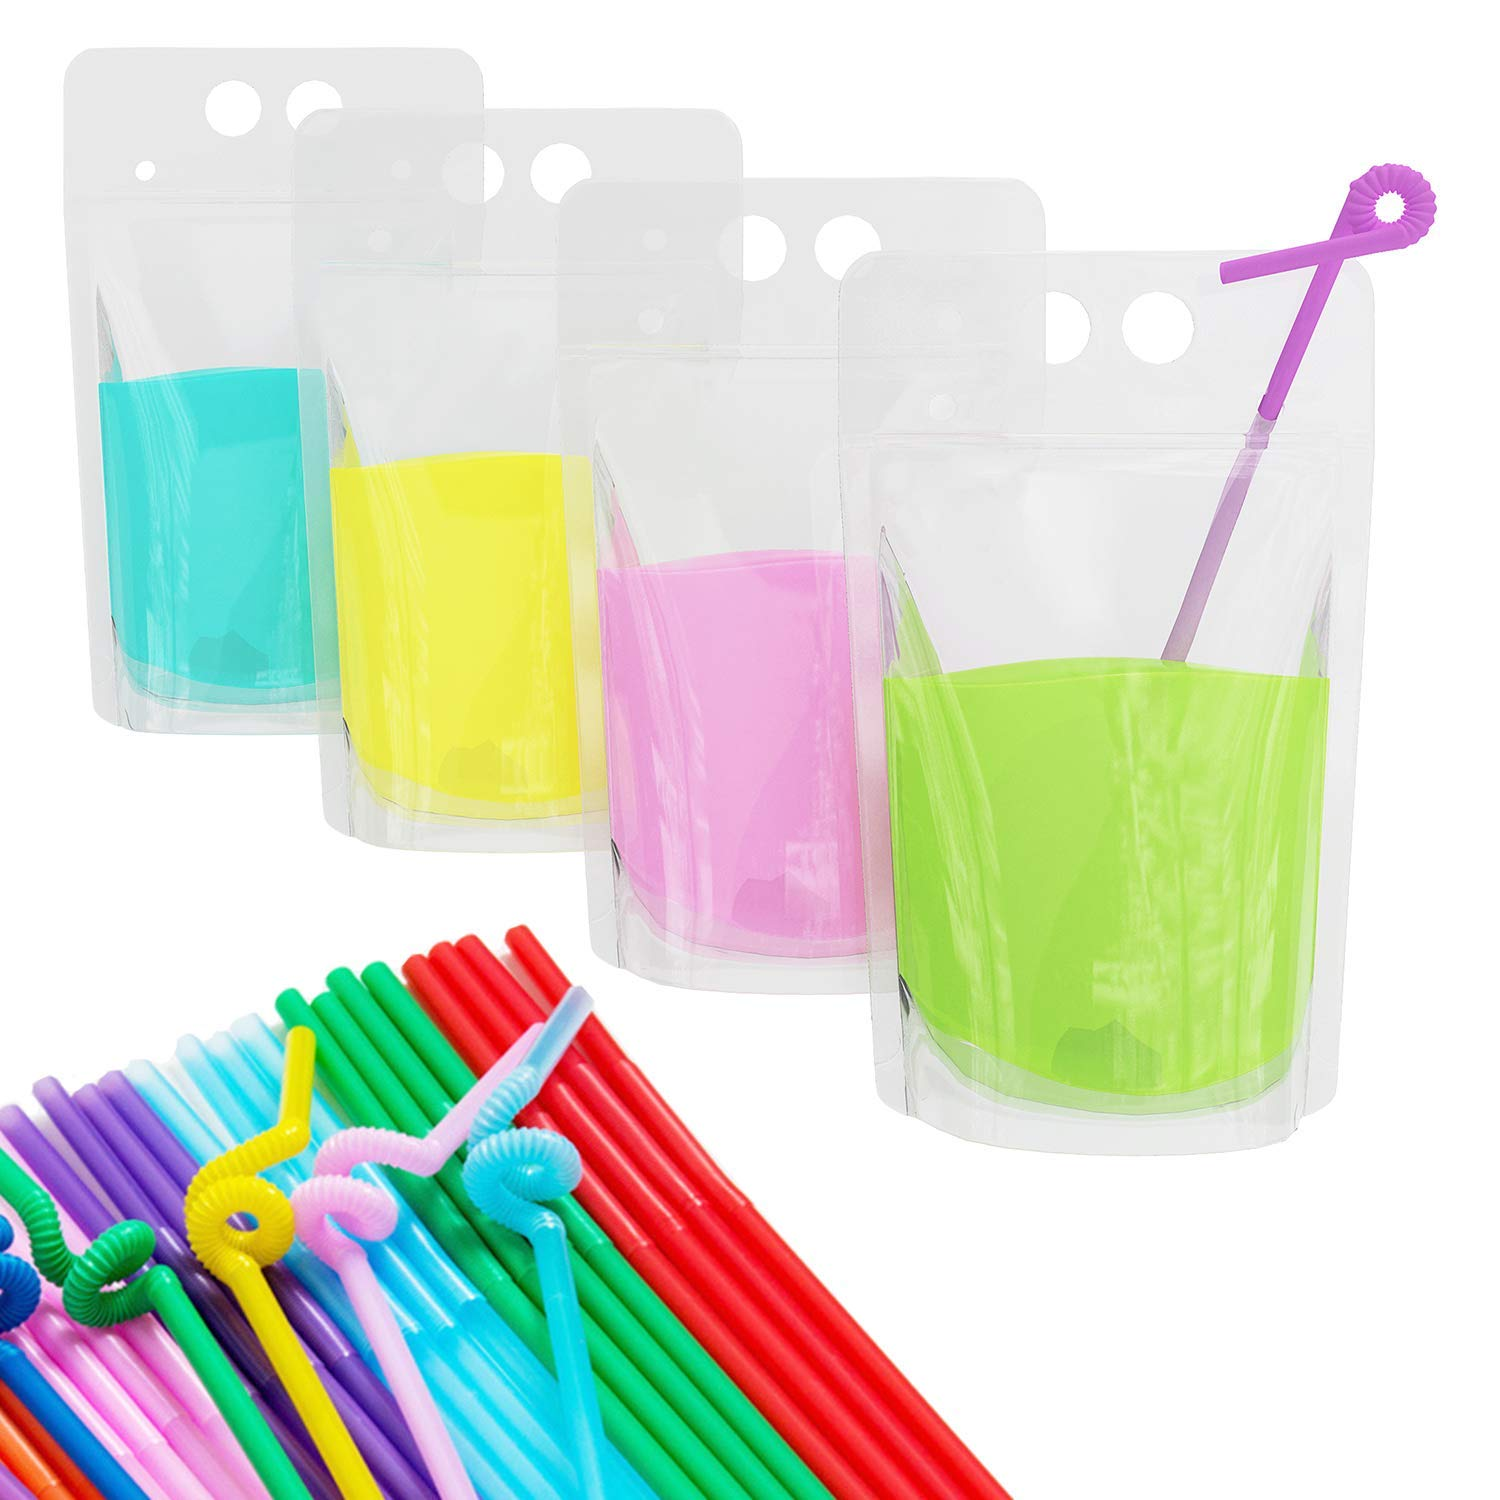 100 Pcs Stand-Up Plastic Drink Pouches Bags with 100 Drink Straws, Zipper Clear Heavy Duty Hand-Held Translucent Reclosable Heat-Proof Bags for Smoothie, Cold & Hot Drinks by Fullsexy